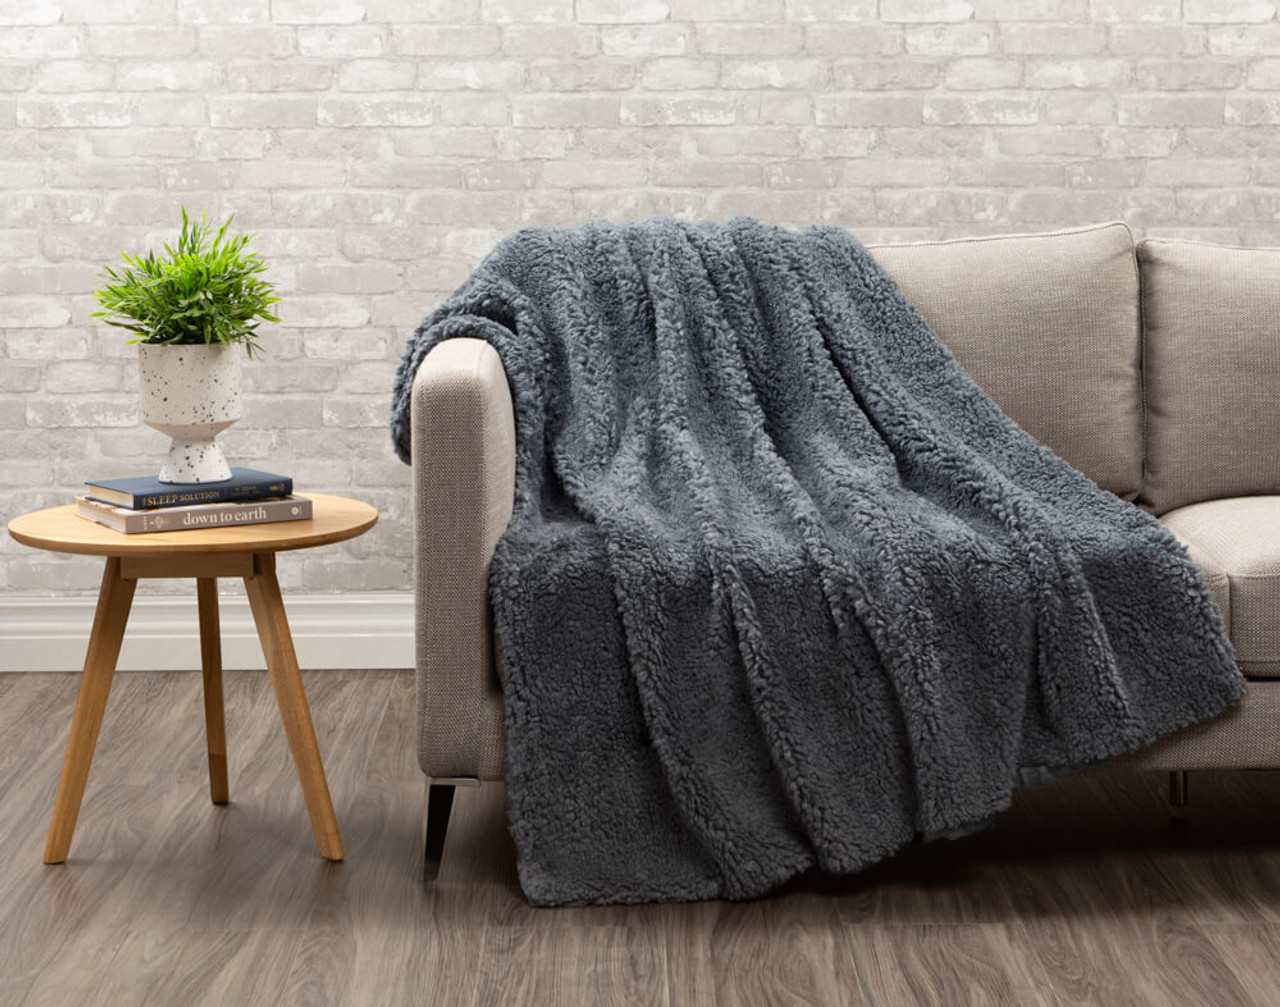 Sherpa side of Lambswool Faux Fur Throw in Thundercloud draped over a living room chair.